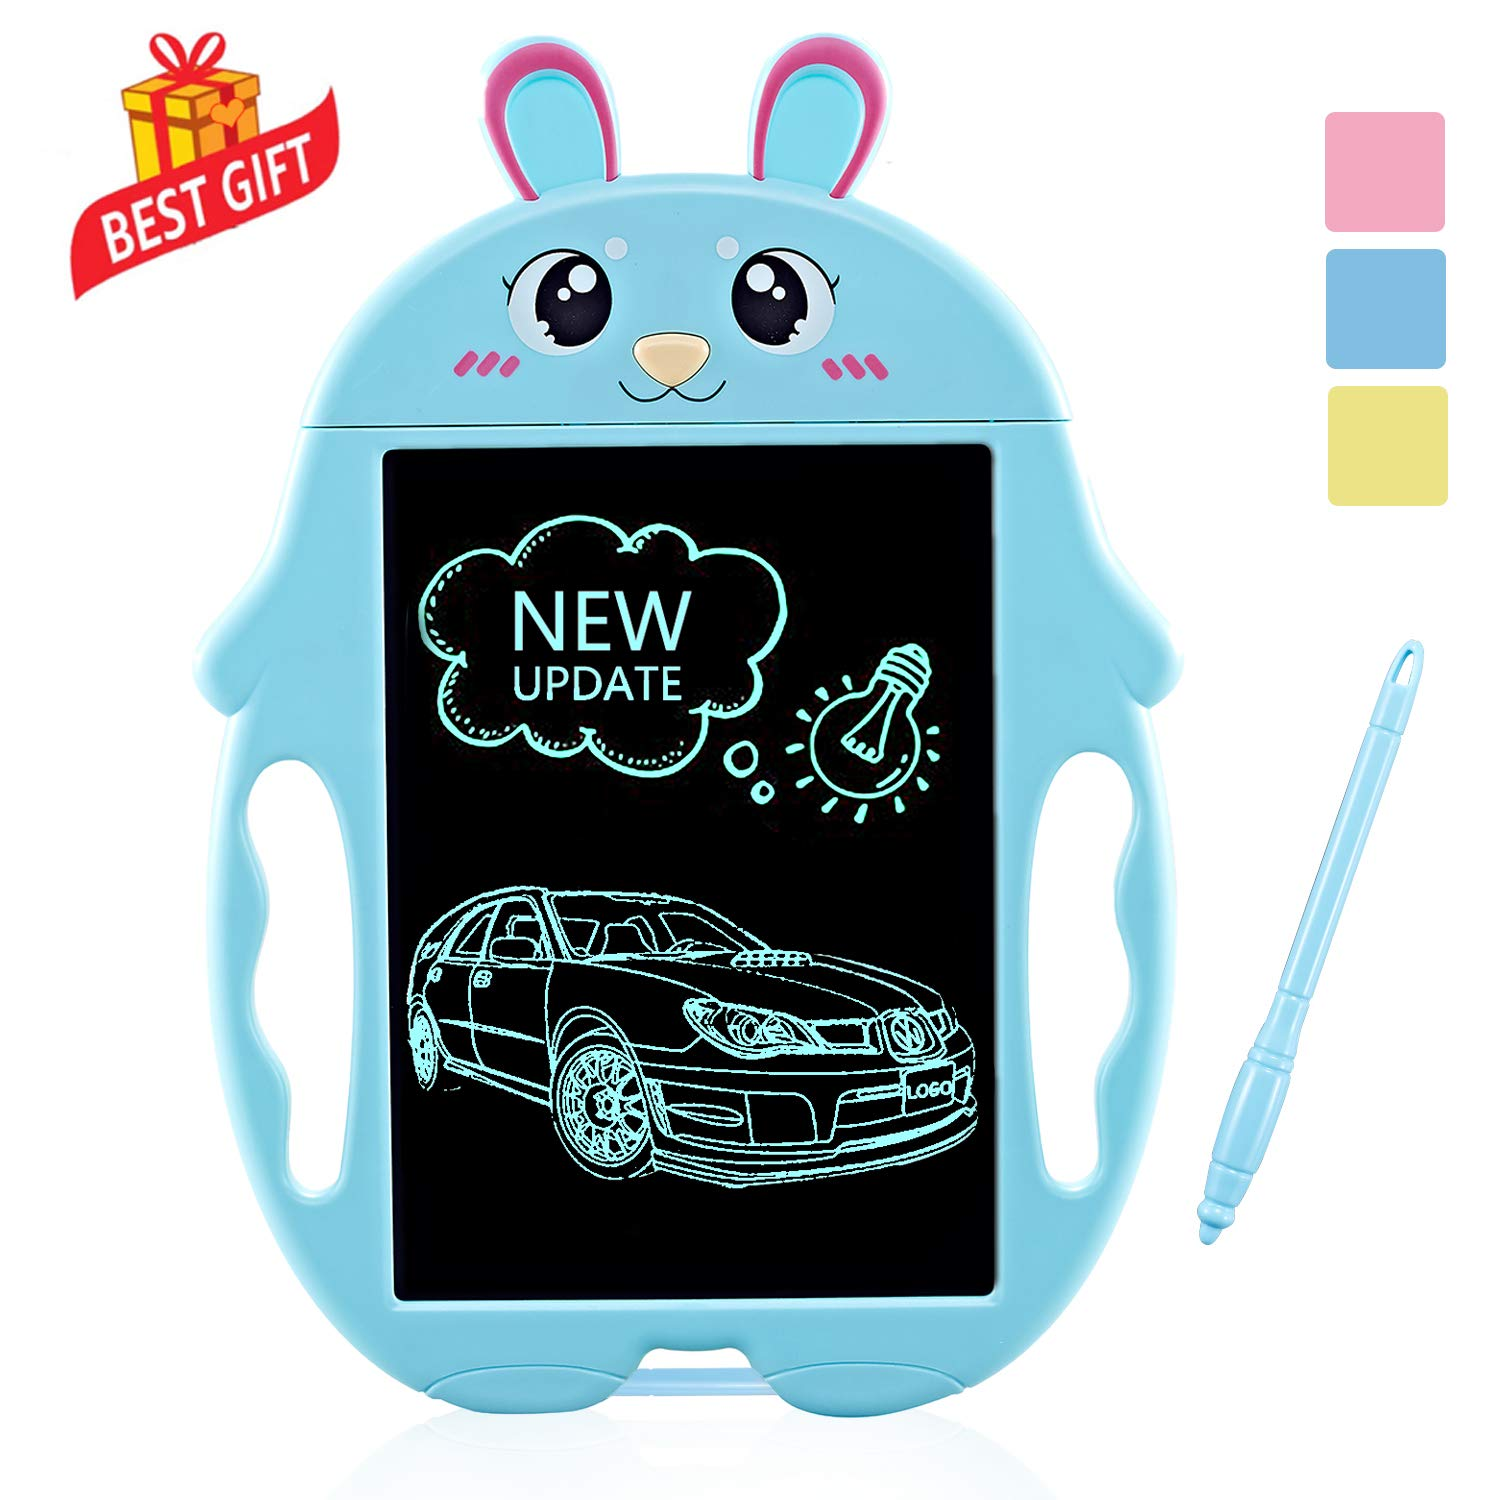 Creative Toys for 2-9 Years Old Boys, Magna Doodle Board for Kids Birthday Presents Gifts for Boys Age 3-10 Drawing Board Gifts for Kids 3-10 Years Old Boys-Girls LCD Writing Tabelt for Kids Blue by SLHFPX